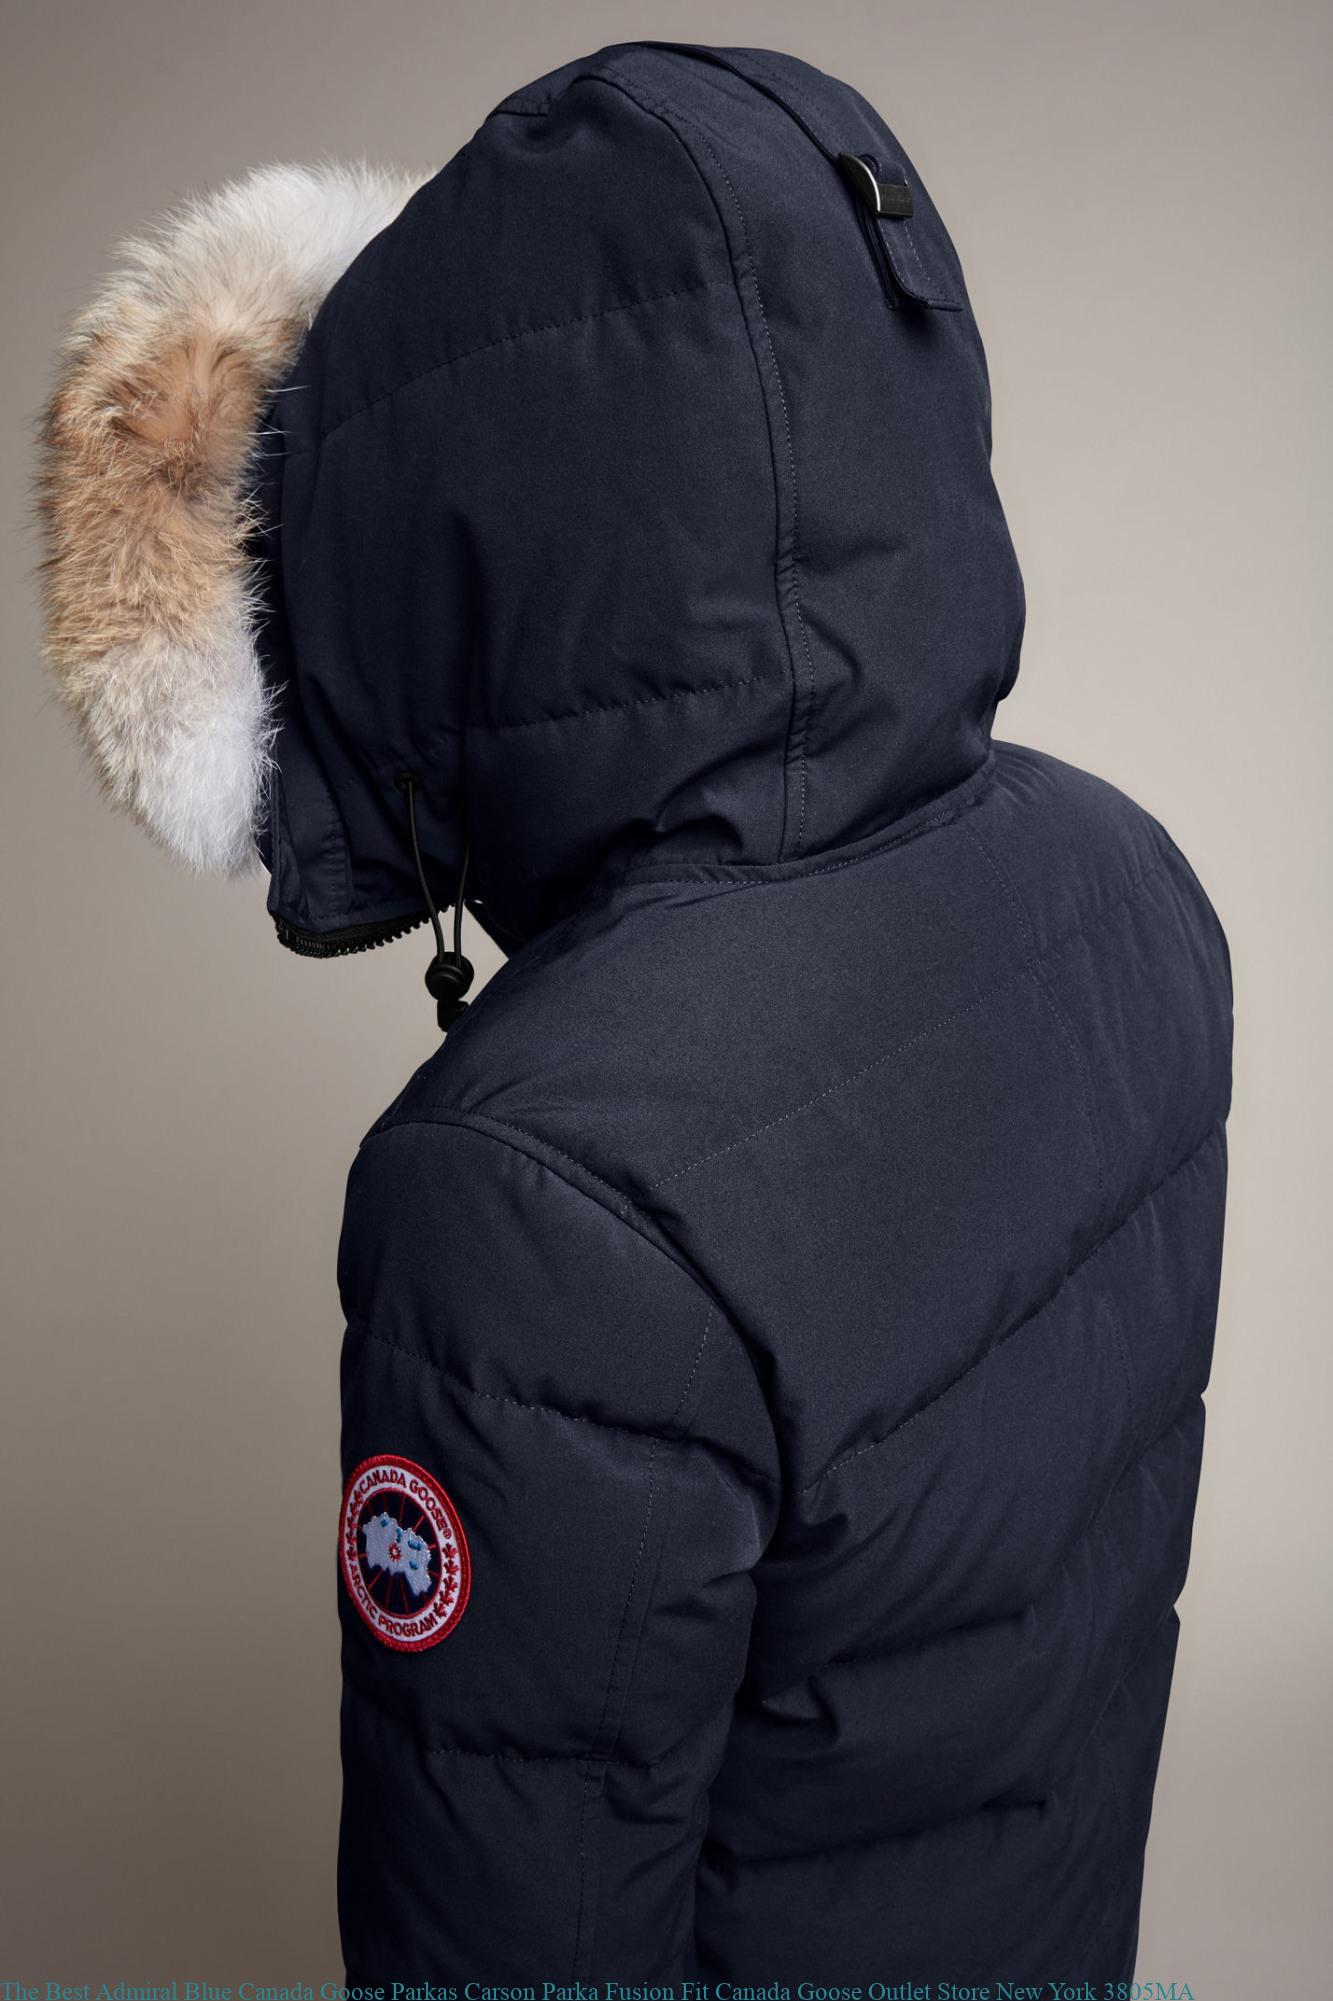 719cbc77ba4 The Best Admiral Blue Canada Goose Parkas Carson Parka Fusion Fit Canada  Goose Outlet Store New York 3805MA